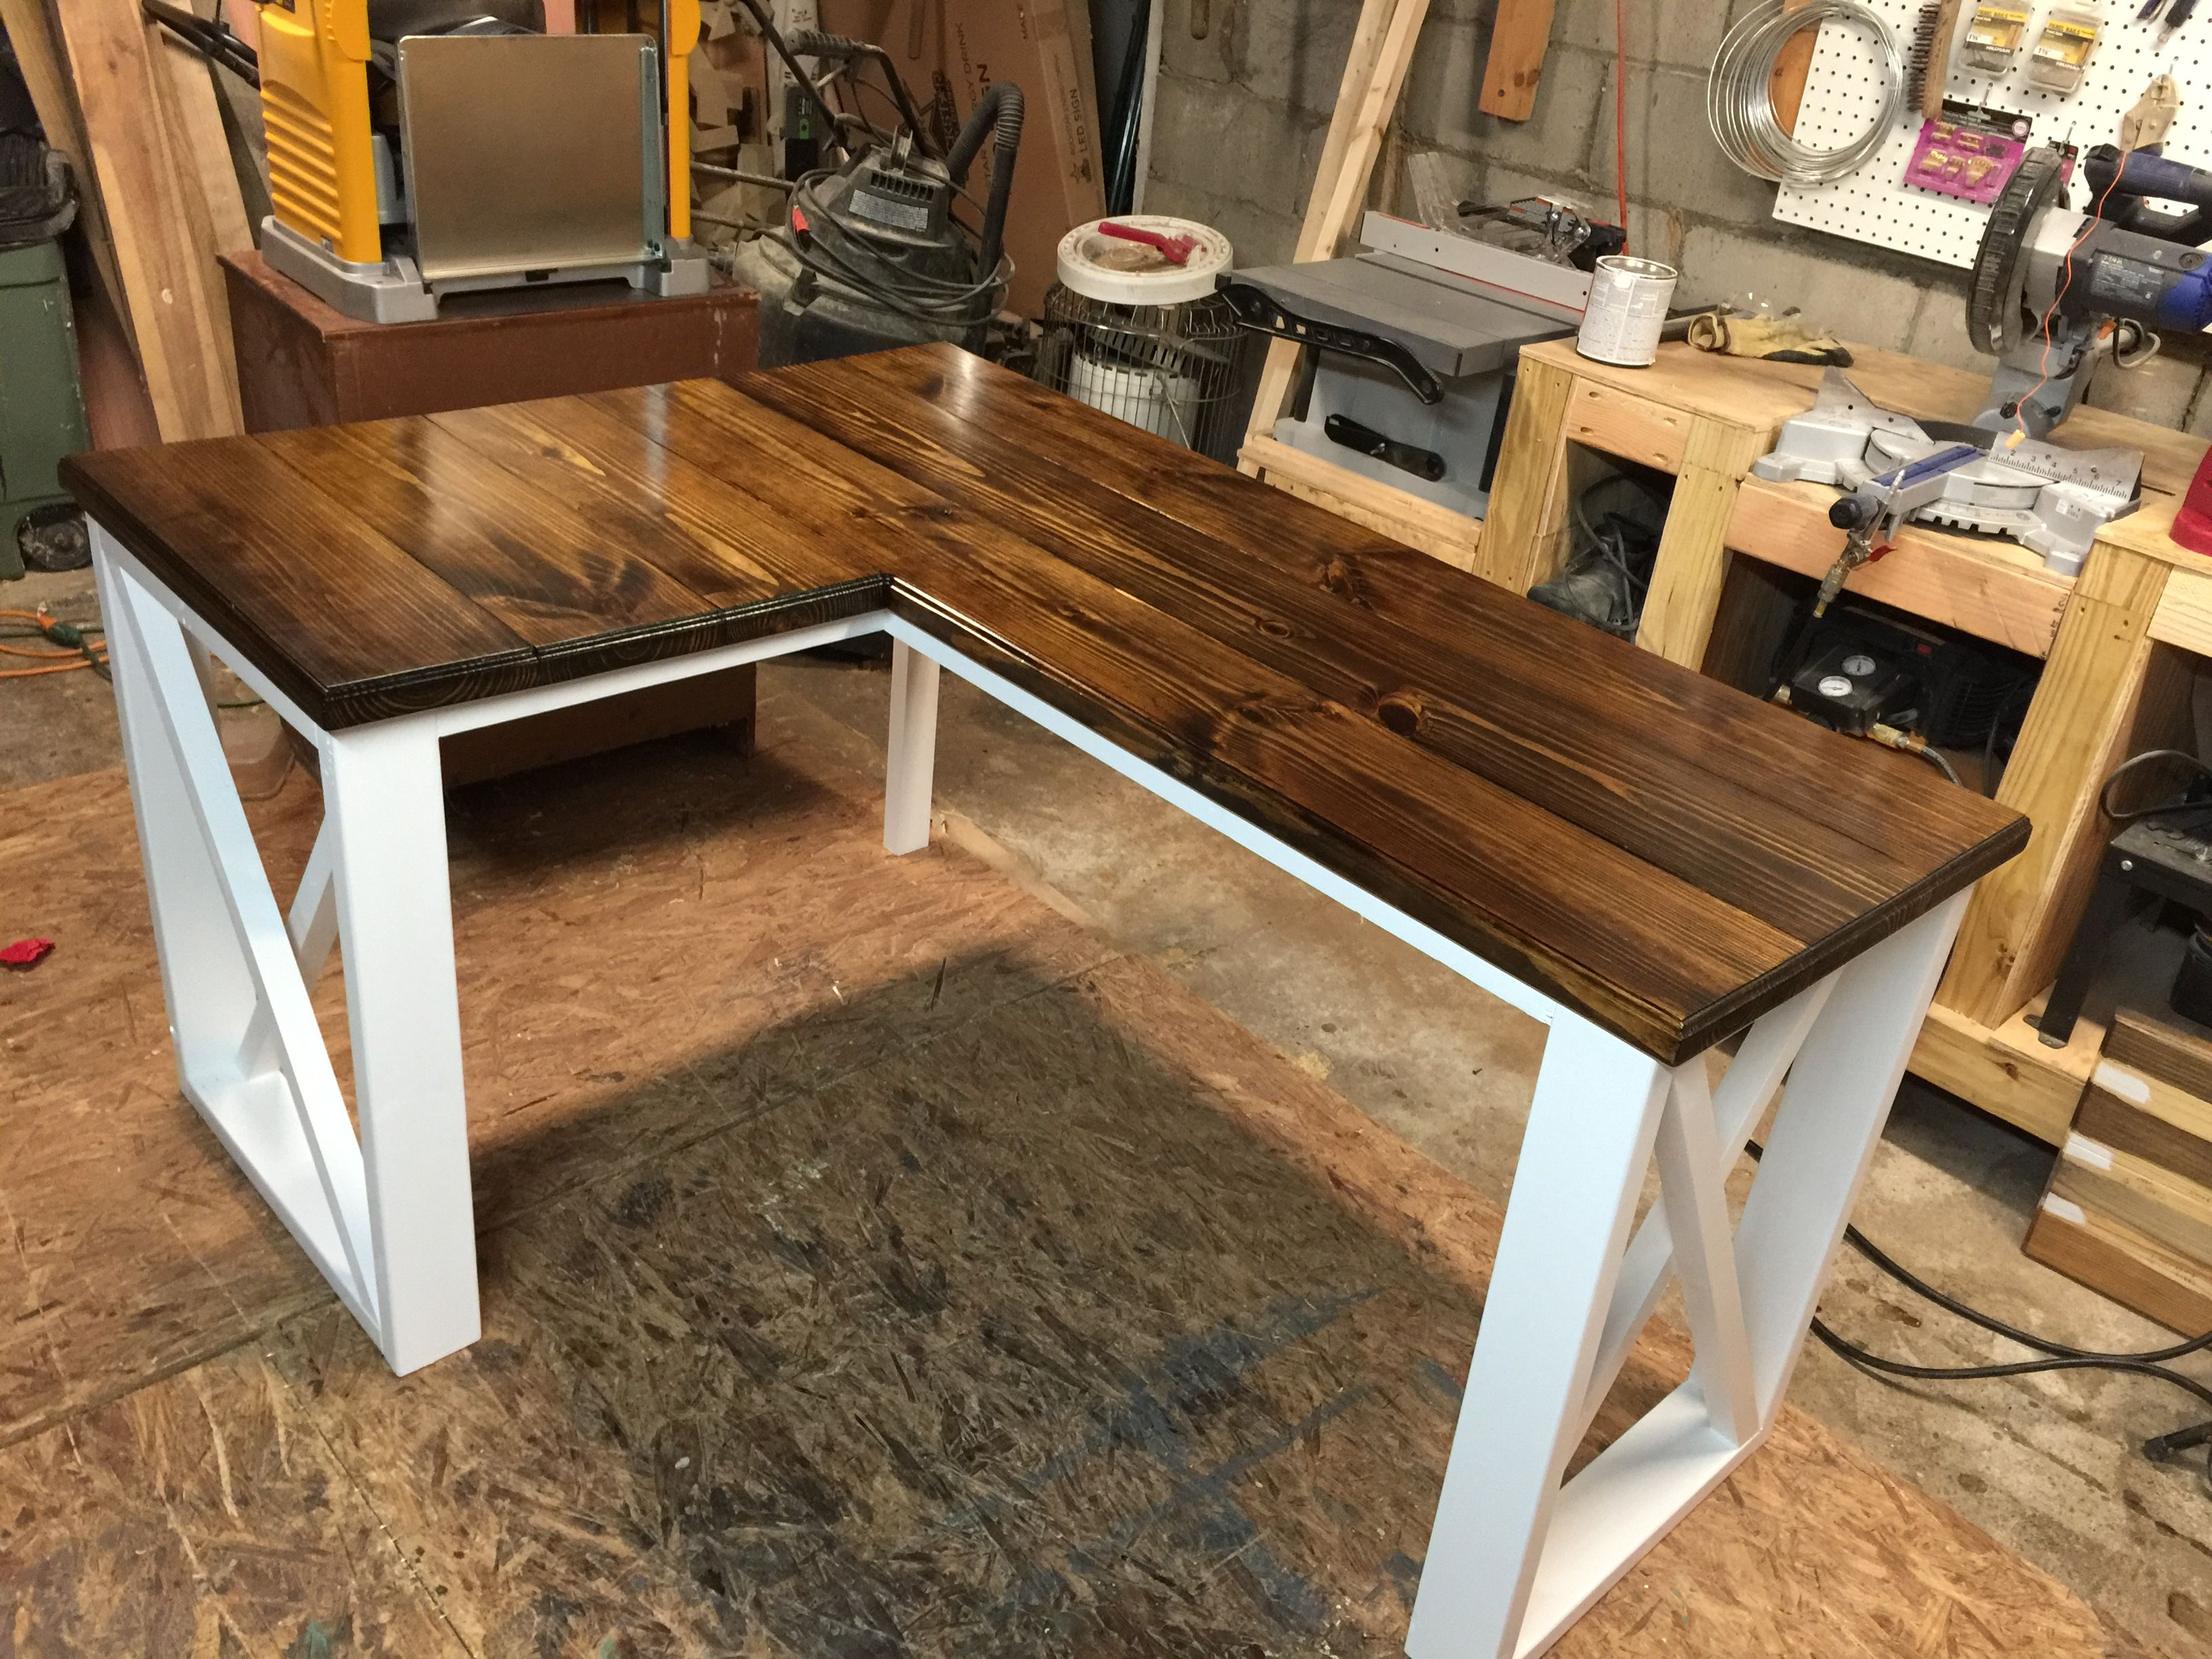 Lshaped desk made using 2x4s and 2x8's Diy corner desk